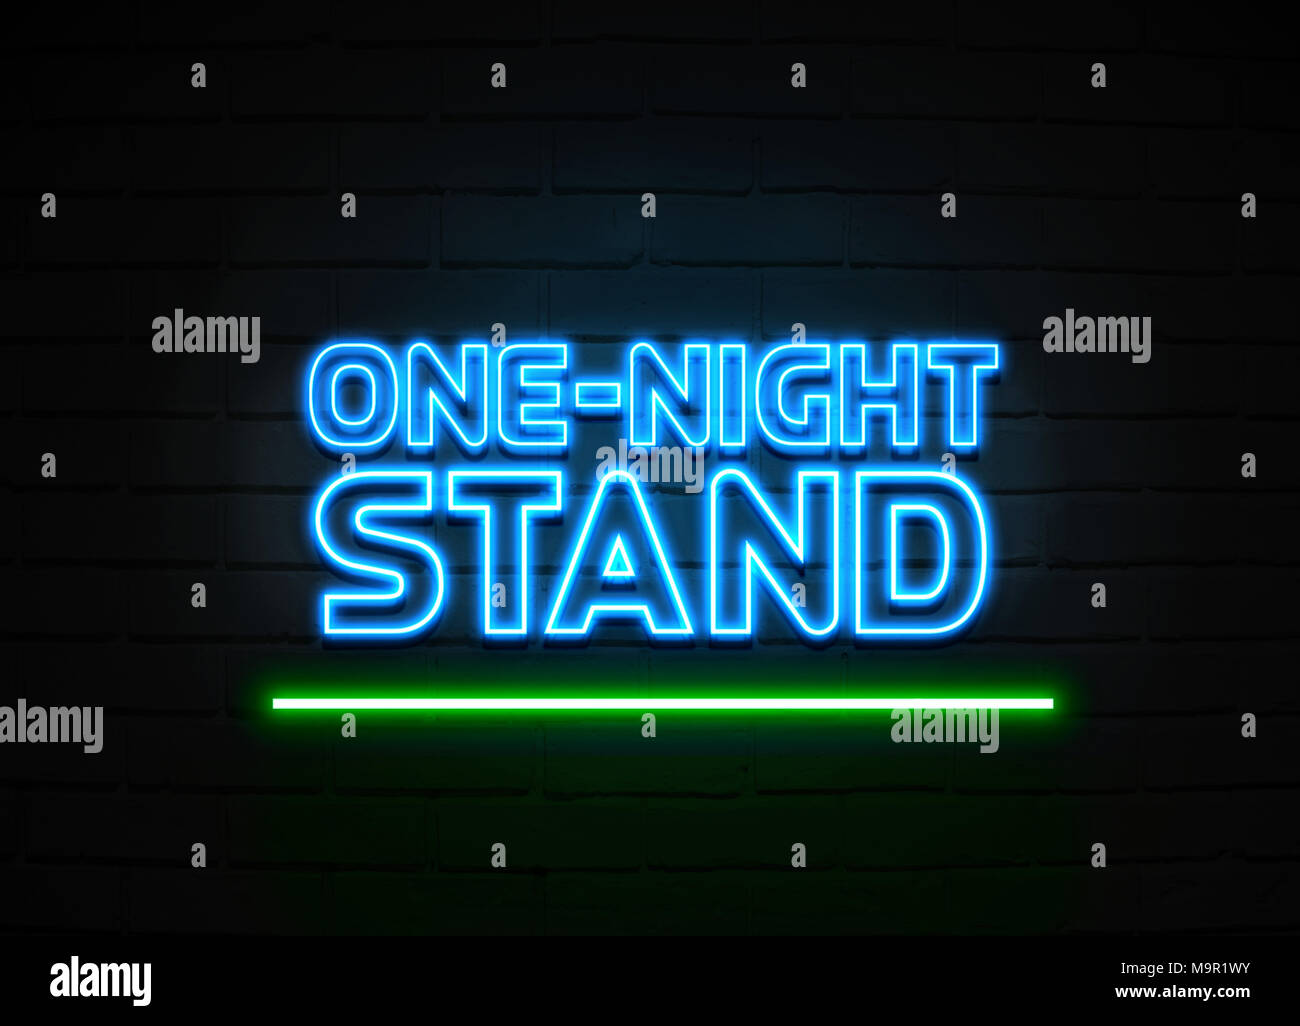 free one night stand no sign up